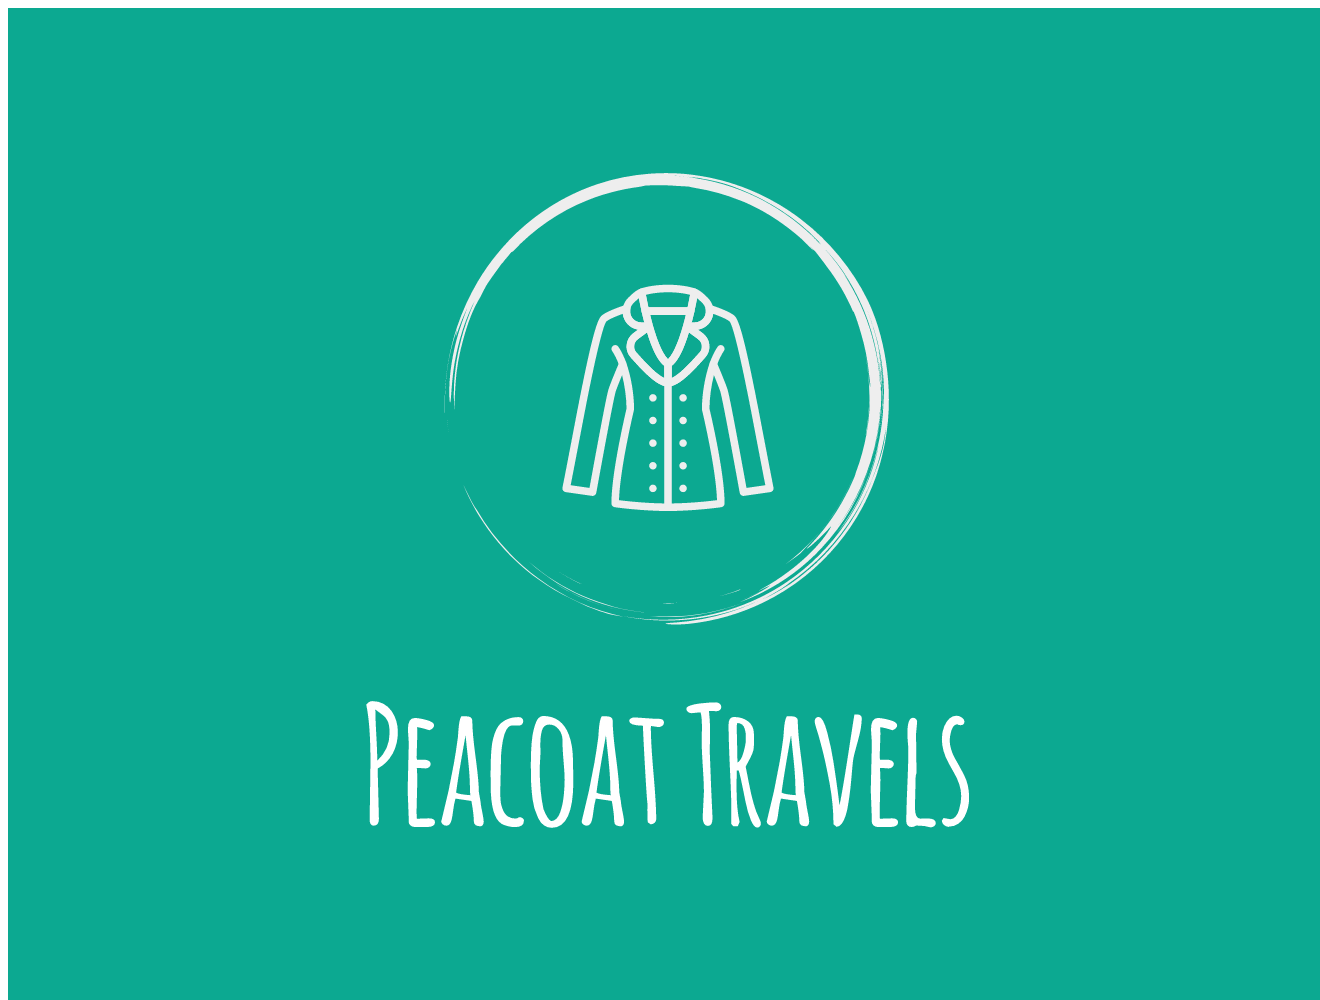 Peacoat Travels